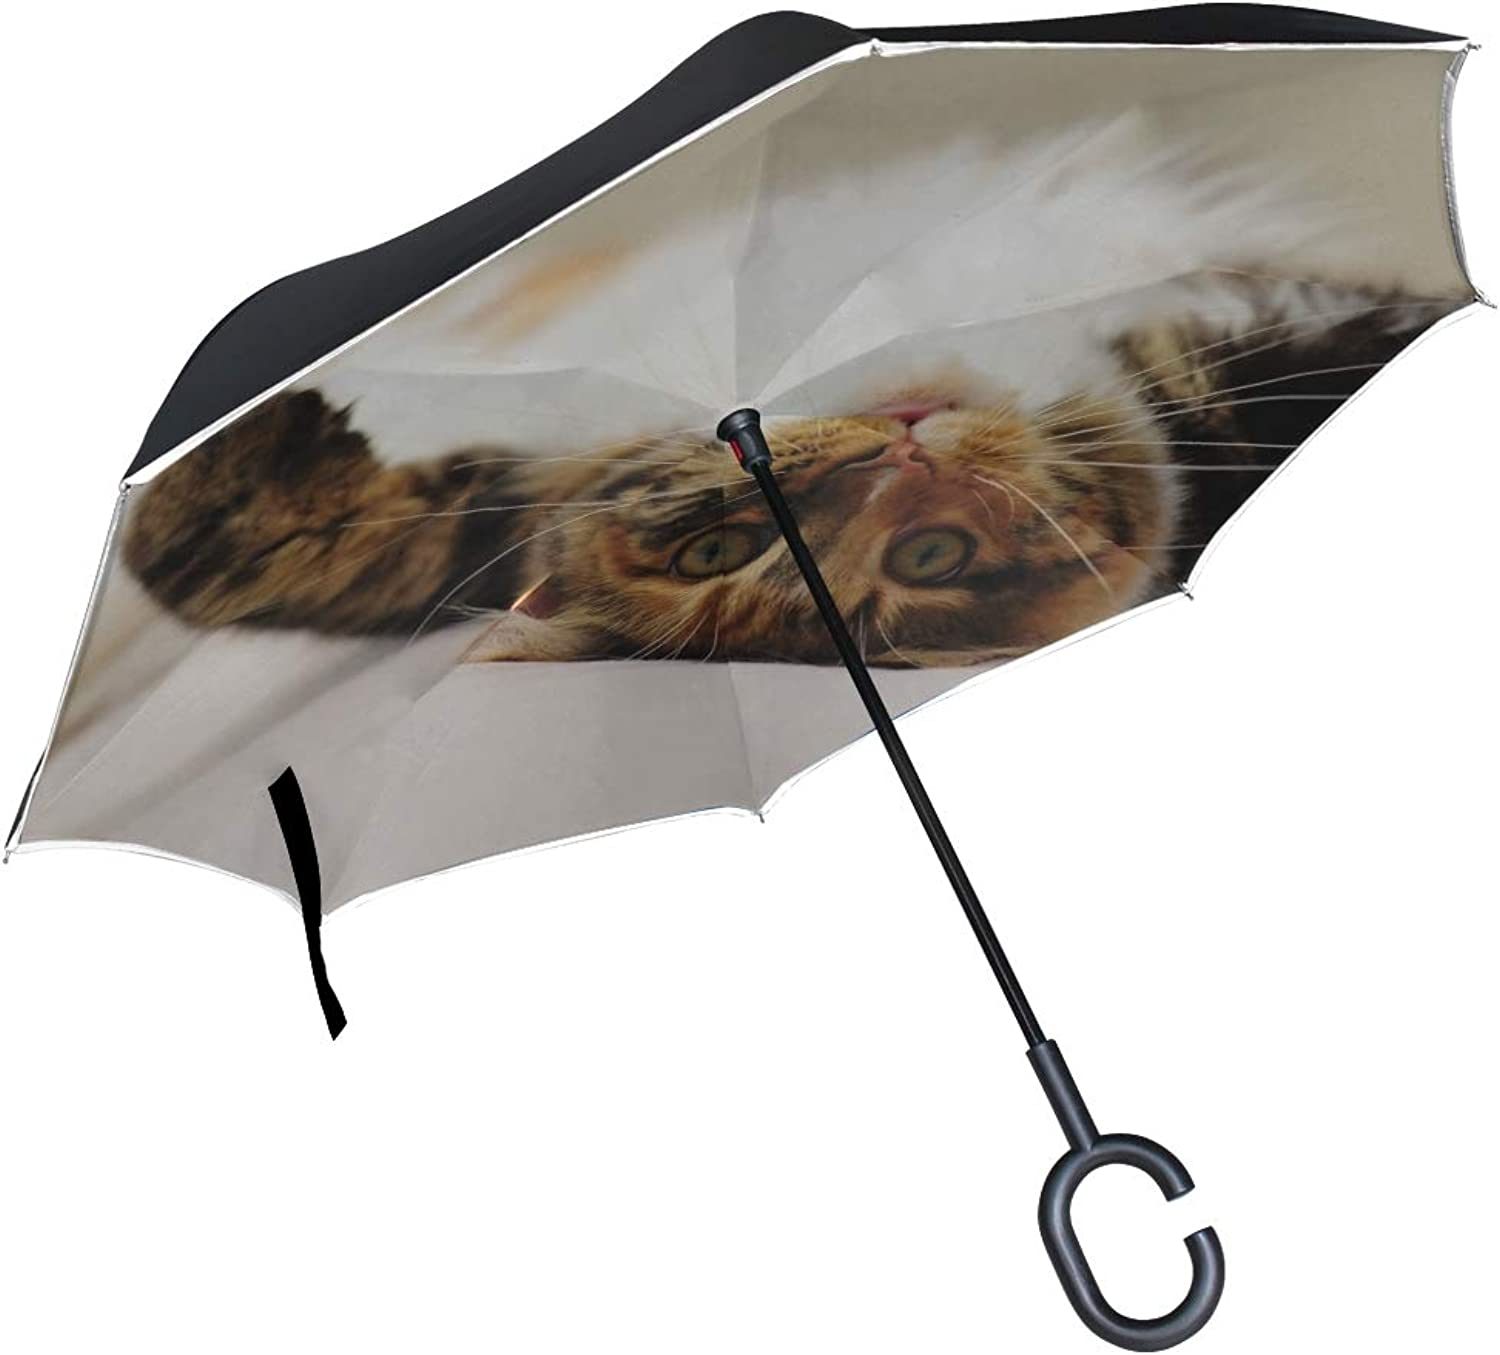 Rh Studio Ingreened Umbrella Cat Lie Paw Cute Spotted Playful Large Double Layer Outdoor Rain Sun Car Reversible Umbrella